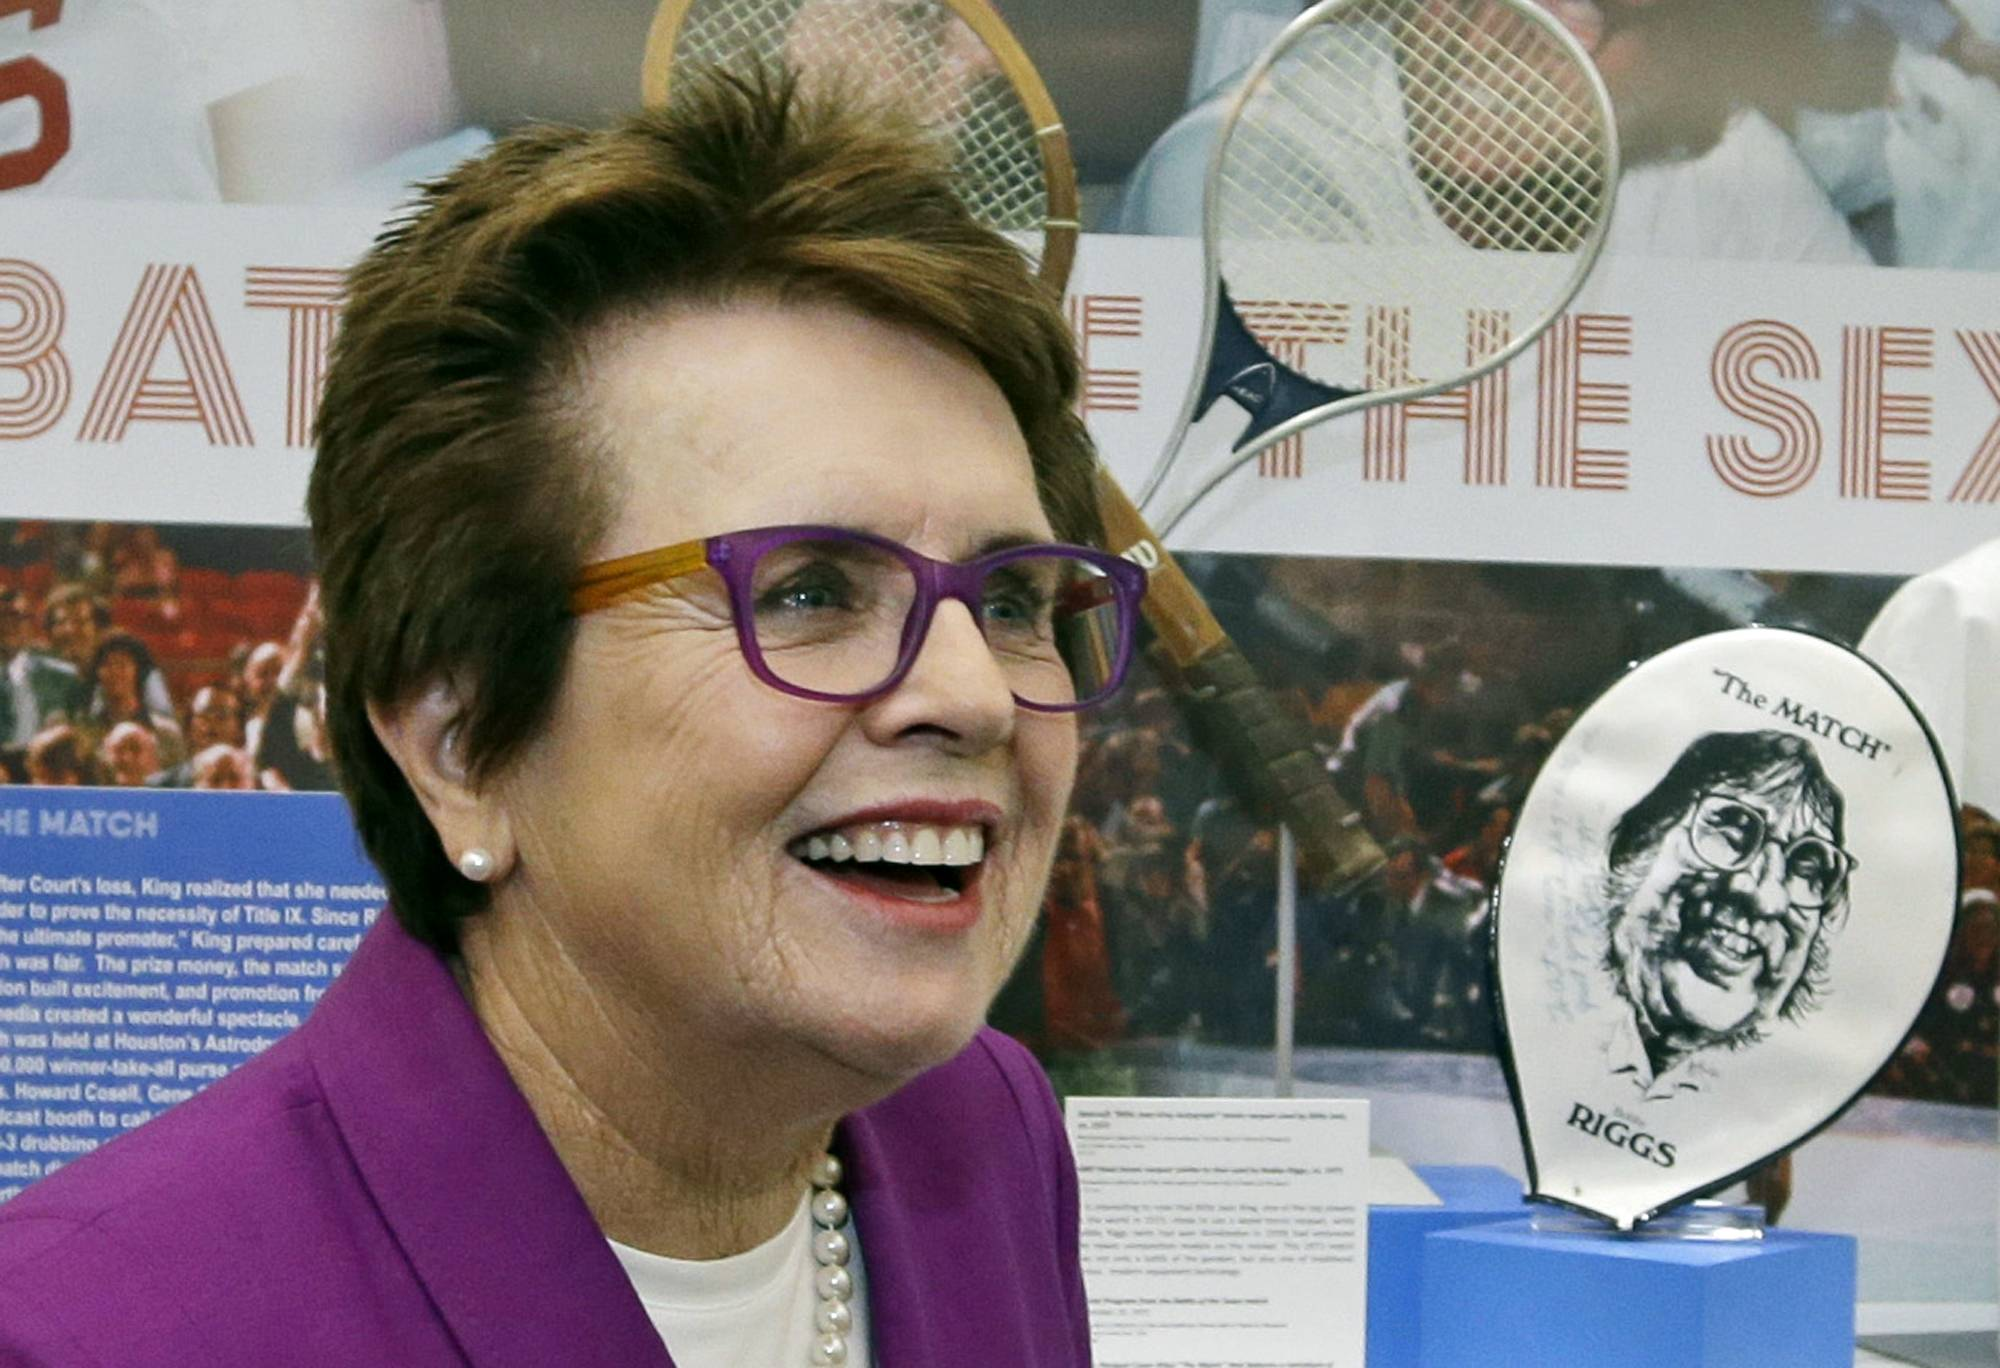 In this Sept. 5, 2013, file photo, Billie Jean King reflects about her match against Bobby Riggs in 1973 as she stands in front of a display at the U.S. Open tennis tournament in New York. King, who couldn't attend the opening of the Sochi Olympic Games because of her mother's death, will attend the closing ceremony with American speed skaters Bonnie Blair and Eric Heiden on Feb. 23 as part of President Barack Obama's official U.S. delegation.